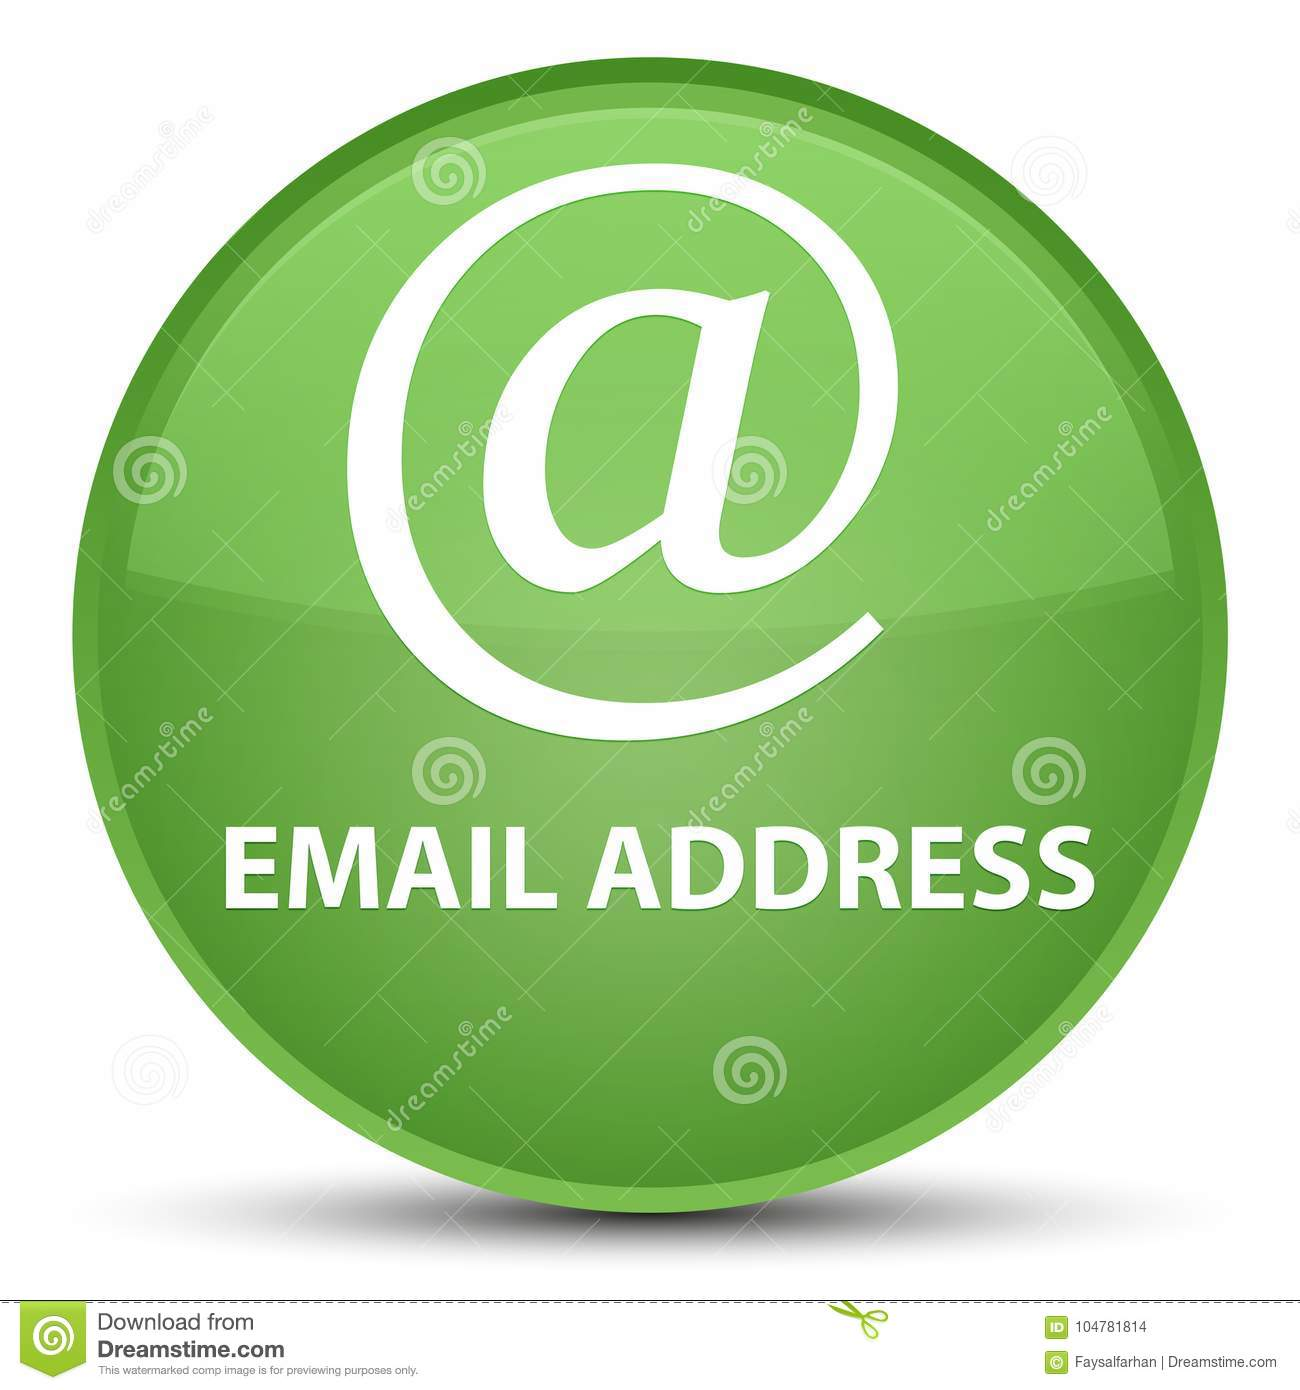 Email address special soft green round button